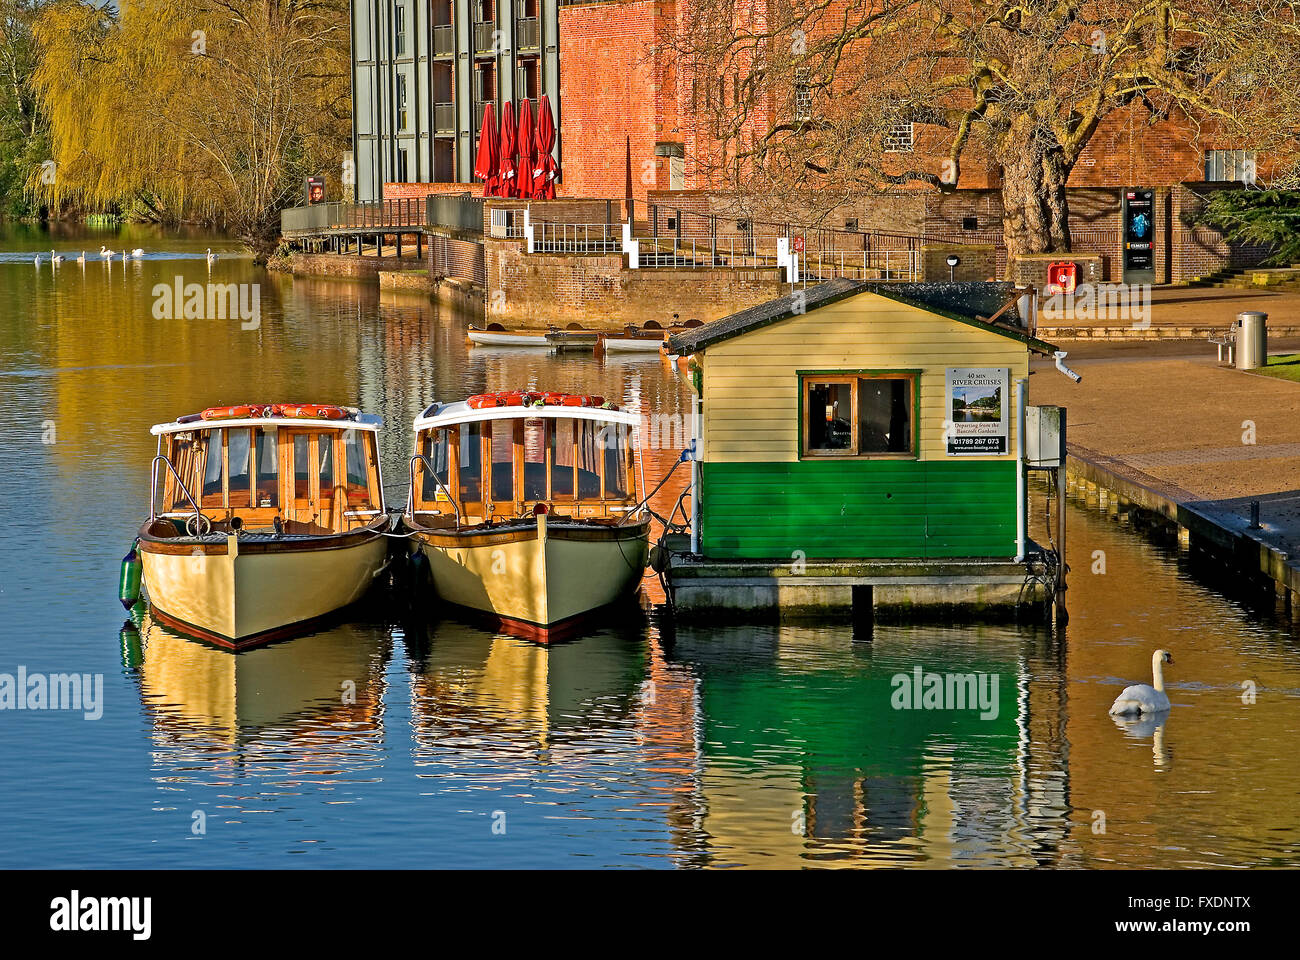 Tourist boats moored on the River Avon in the centre of Stratford upon Avon, Warwickshire Stock Photo